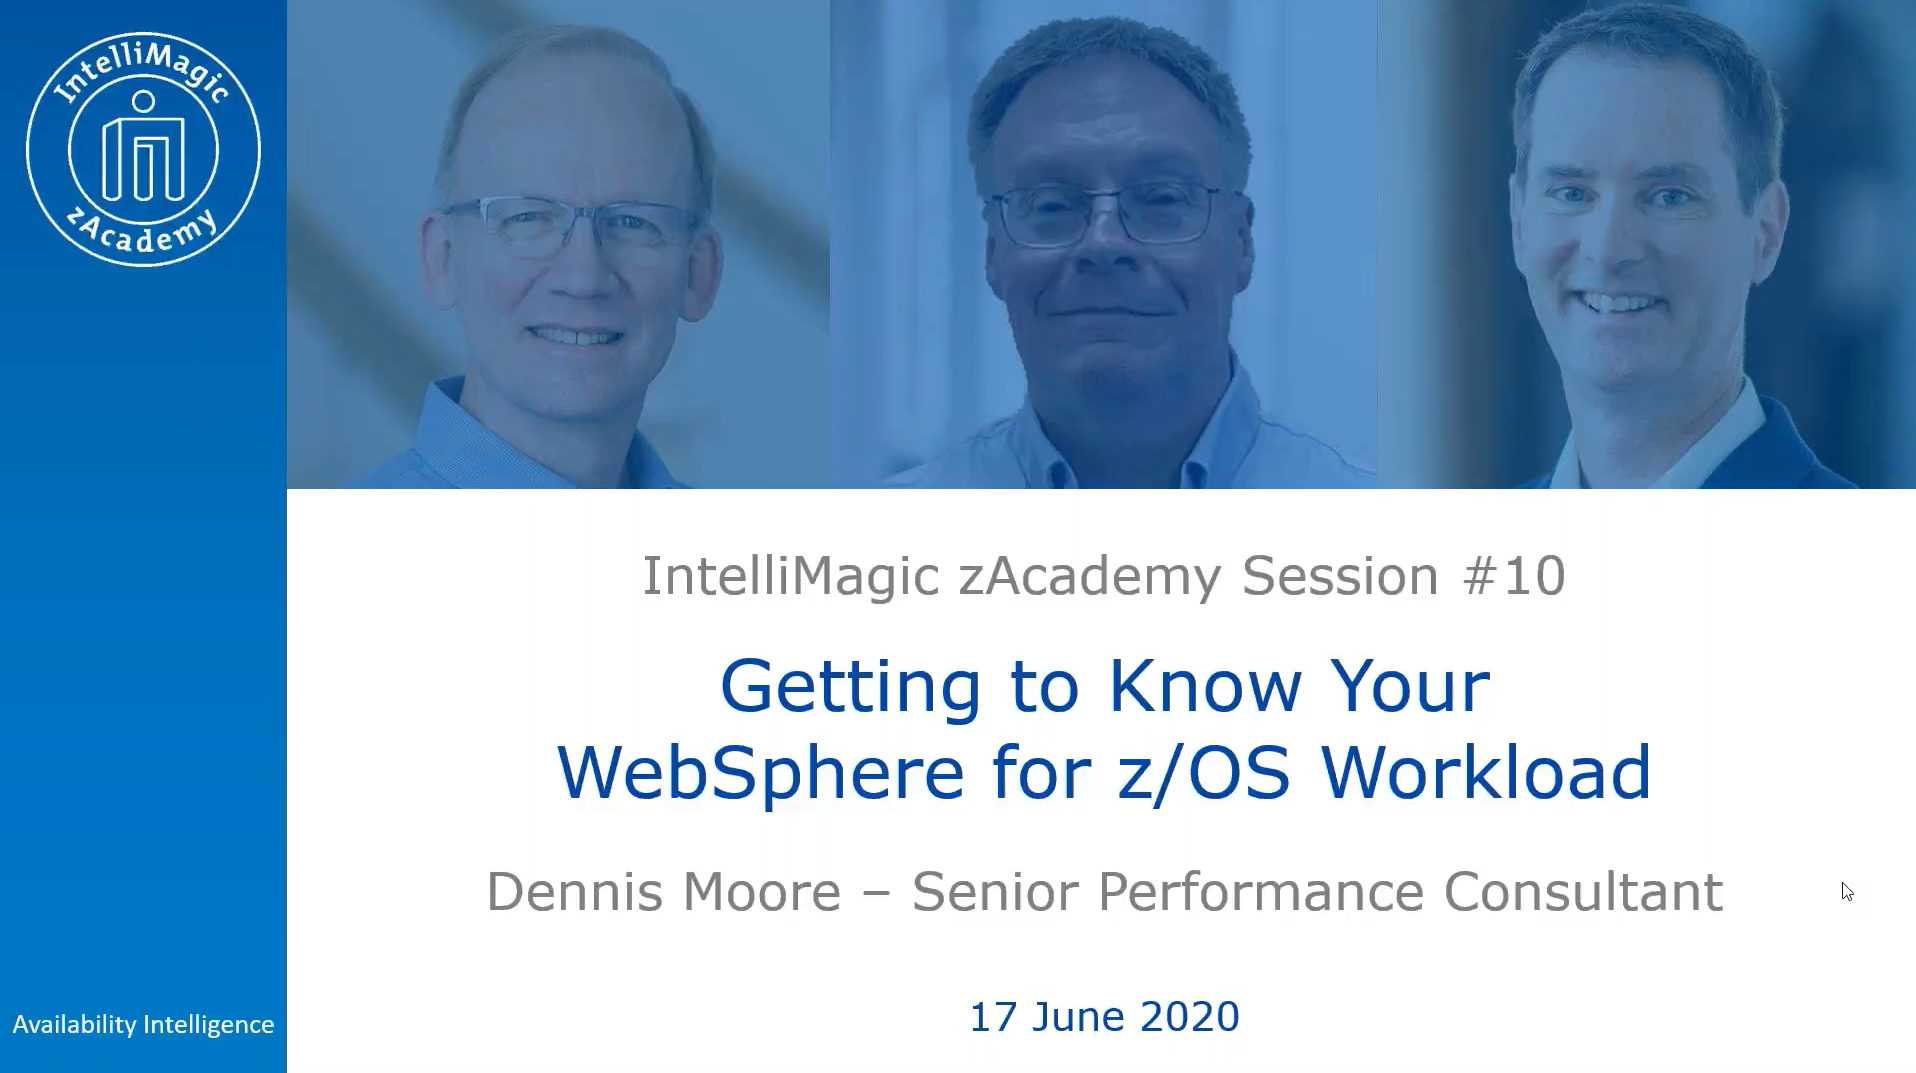 Getting to Know Your WebSphere for z/OS Workload